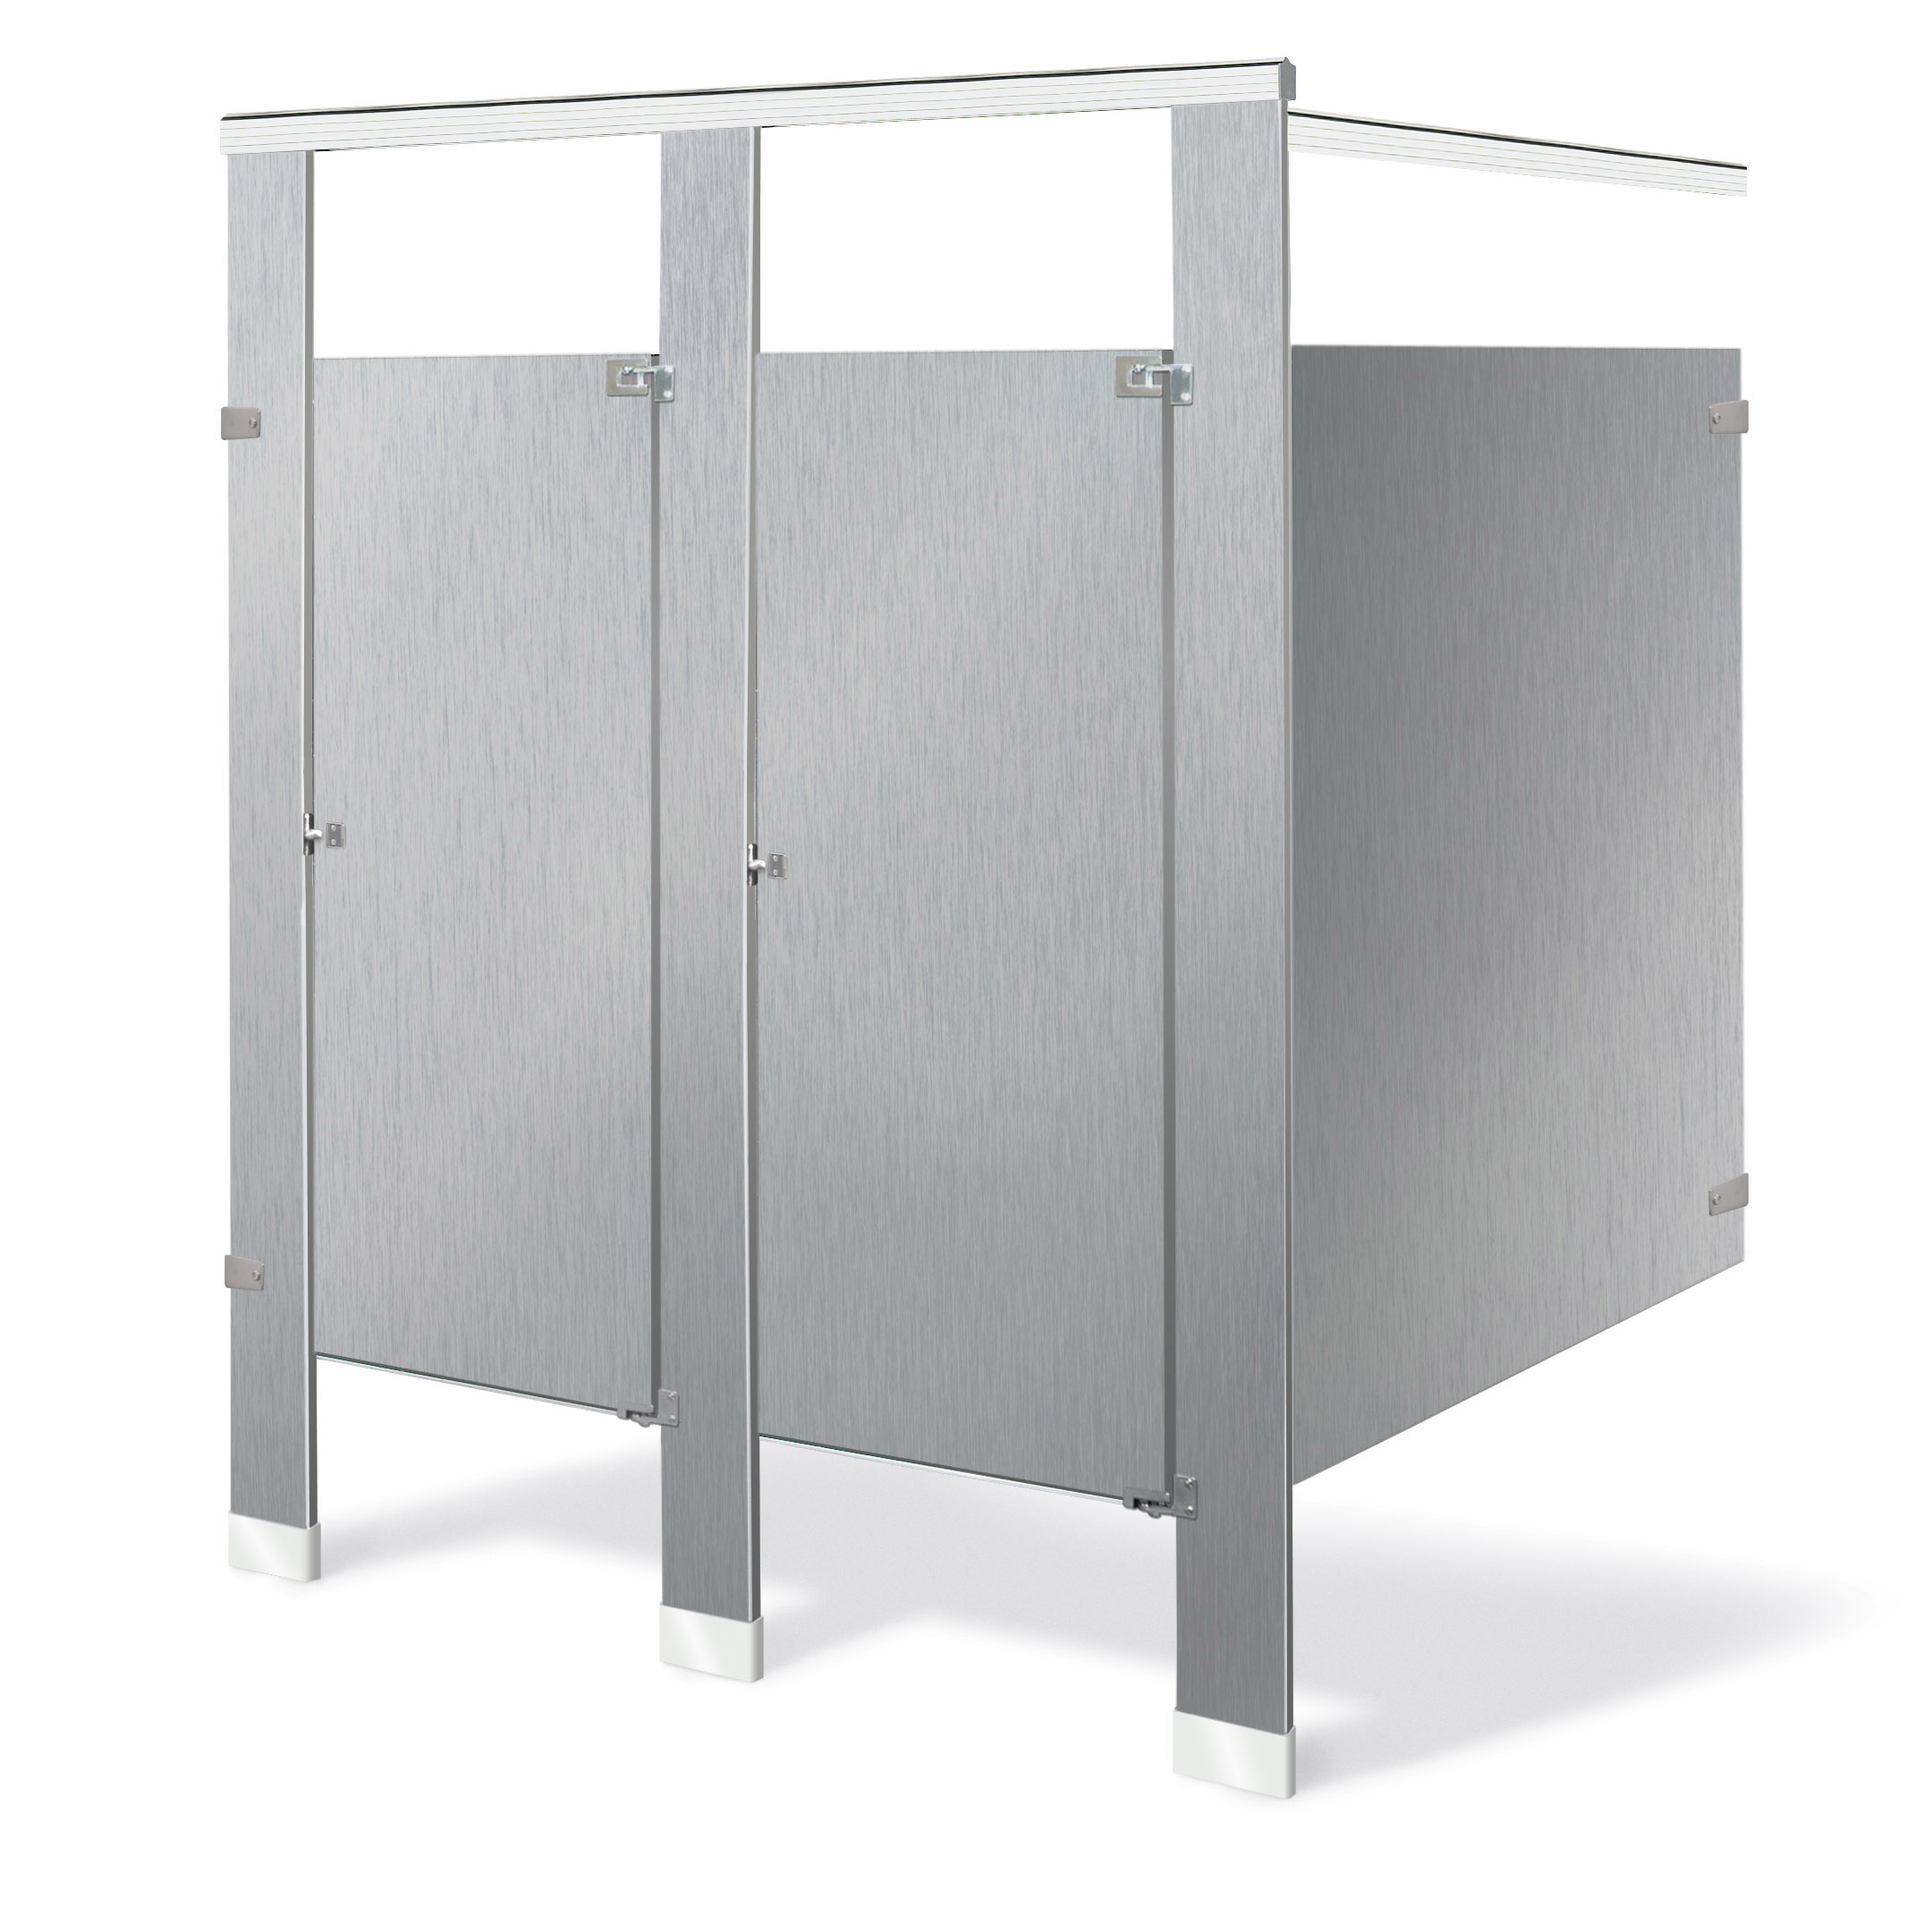 Bradley mills stainless steel bathroom partitions for Bathroom partitions